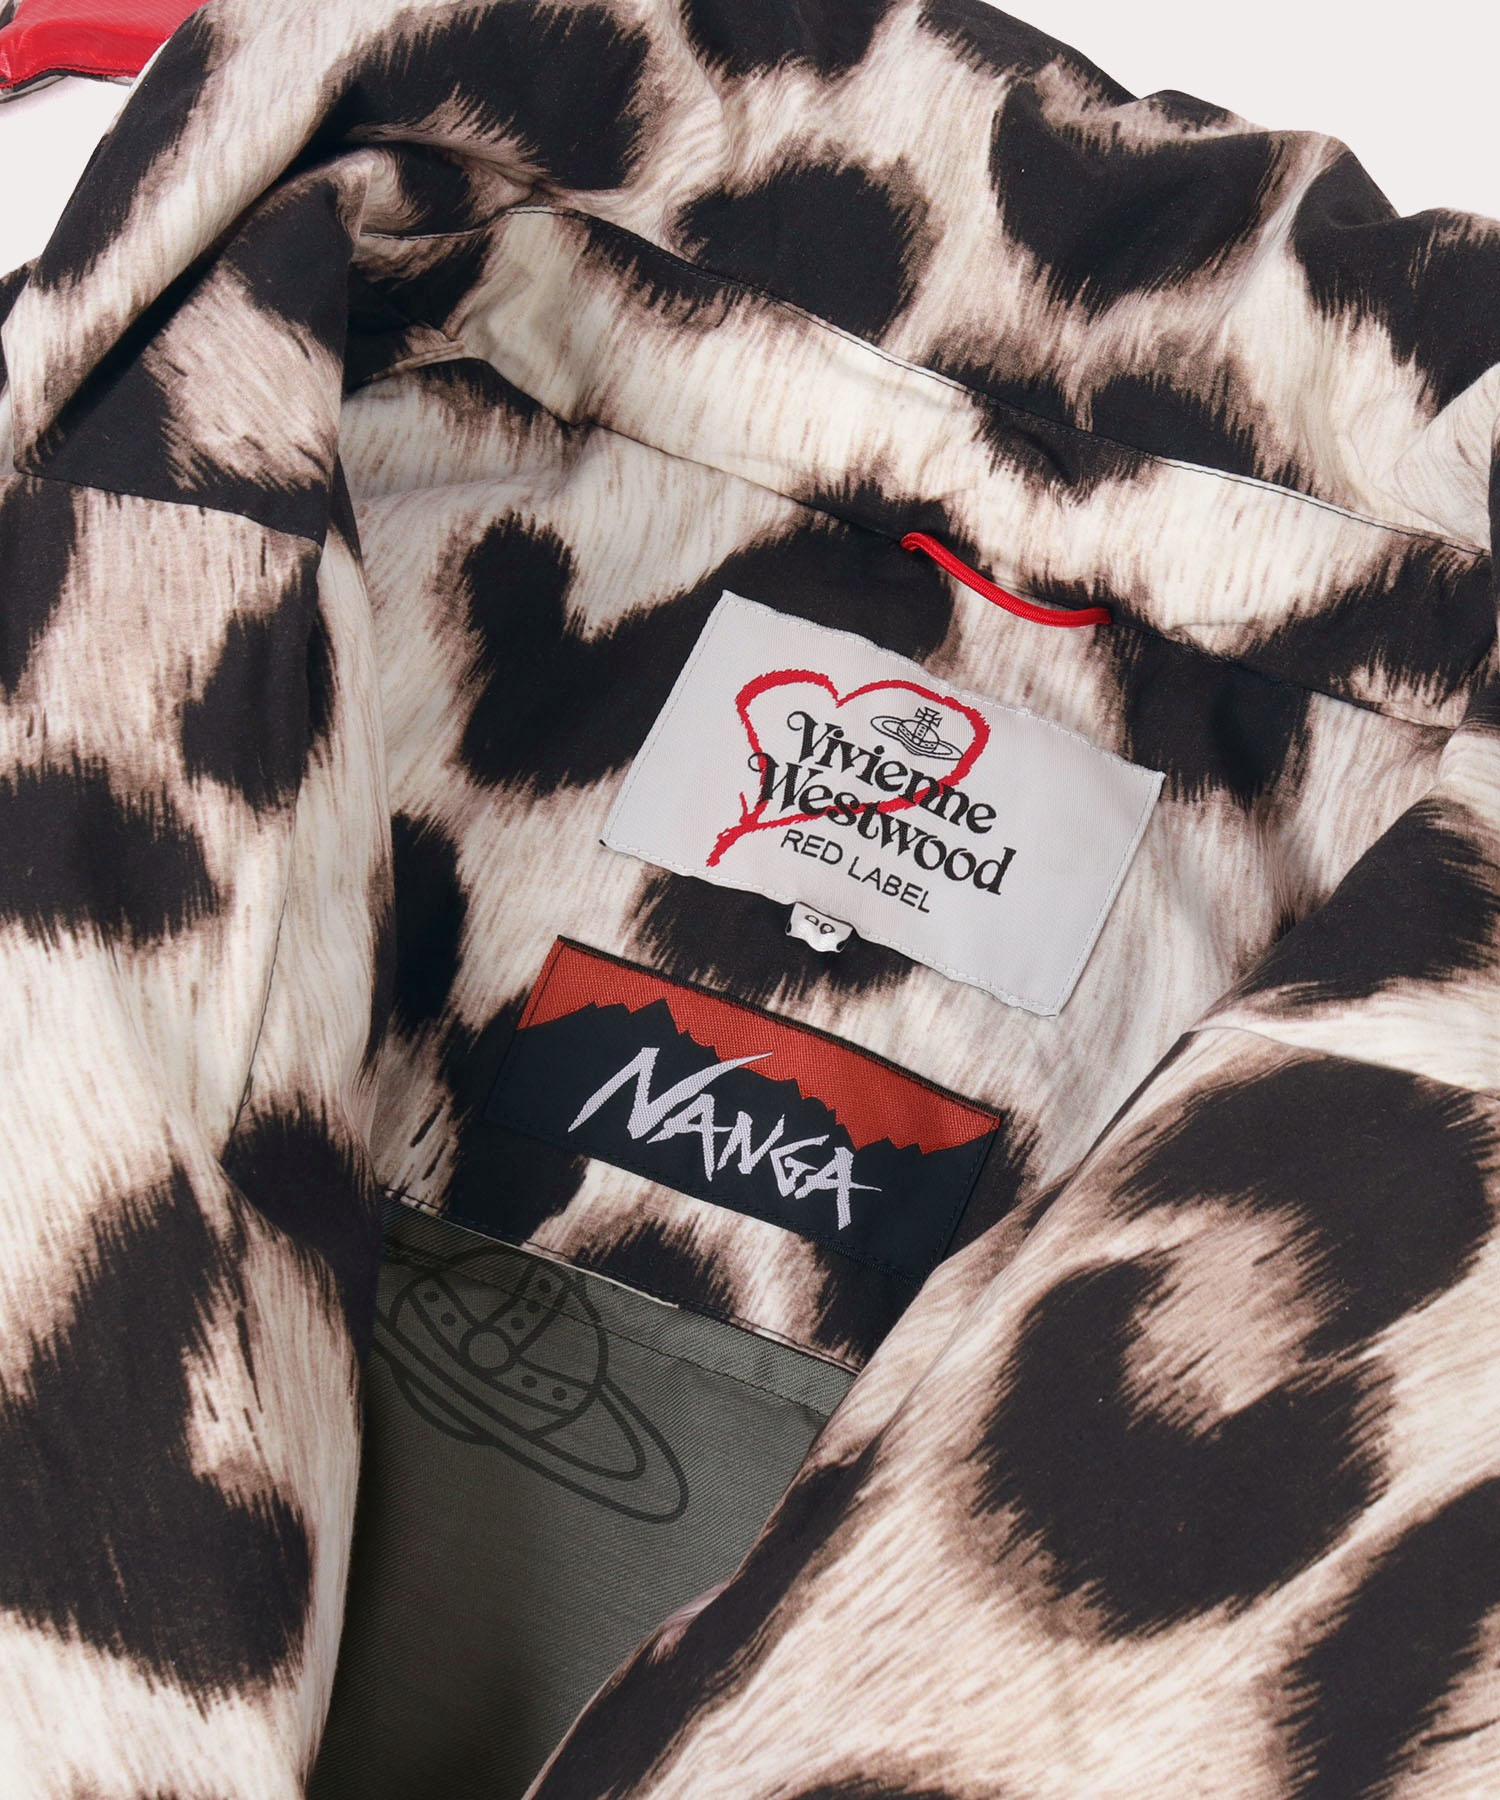 Vivienne Westwood RED LABEL×NANGA アルペン ジャケット